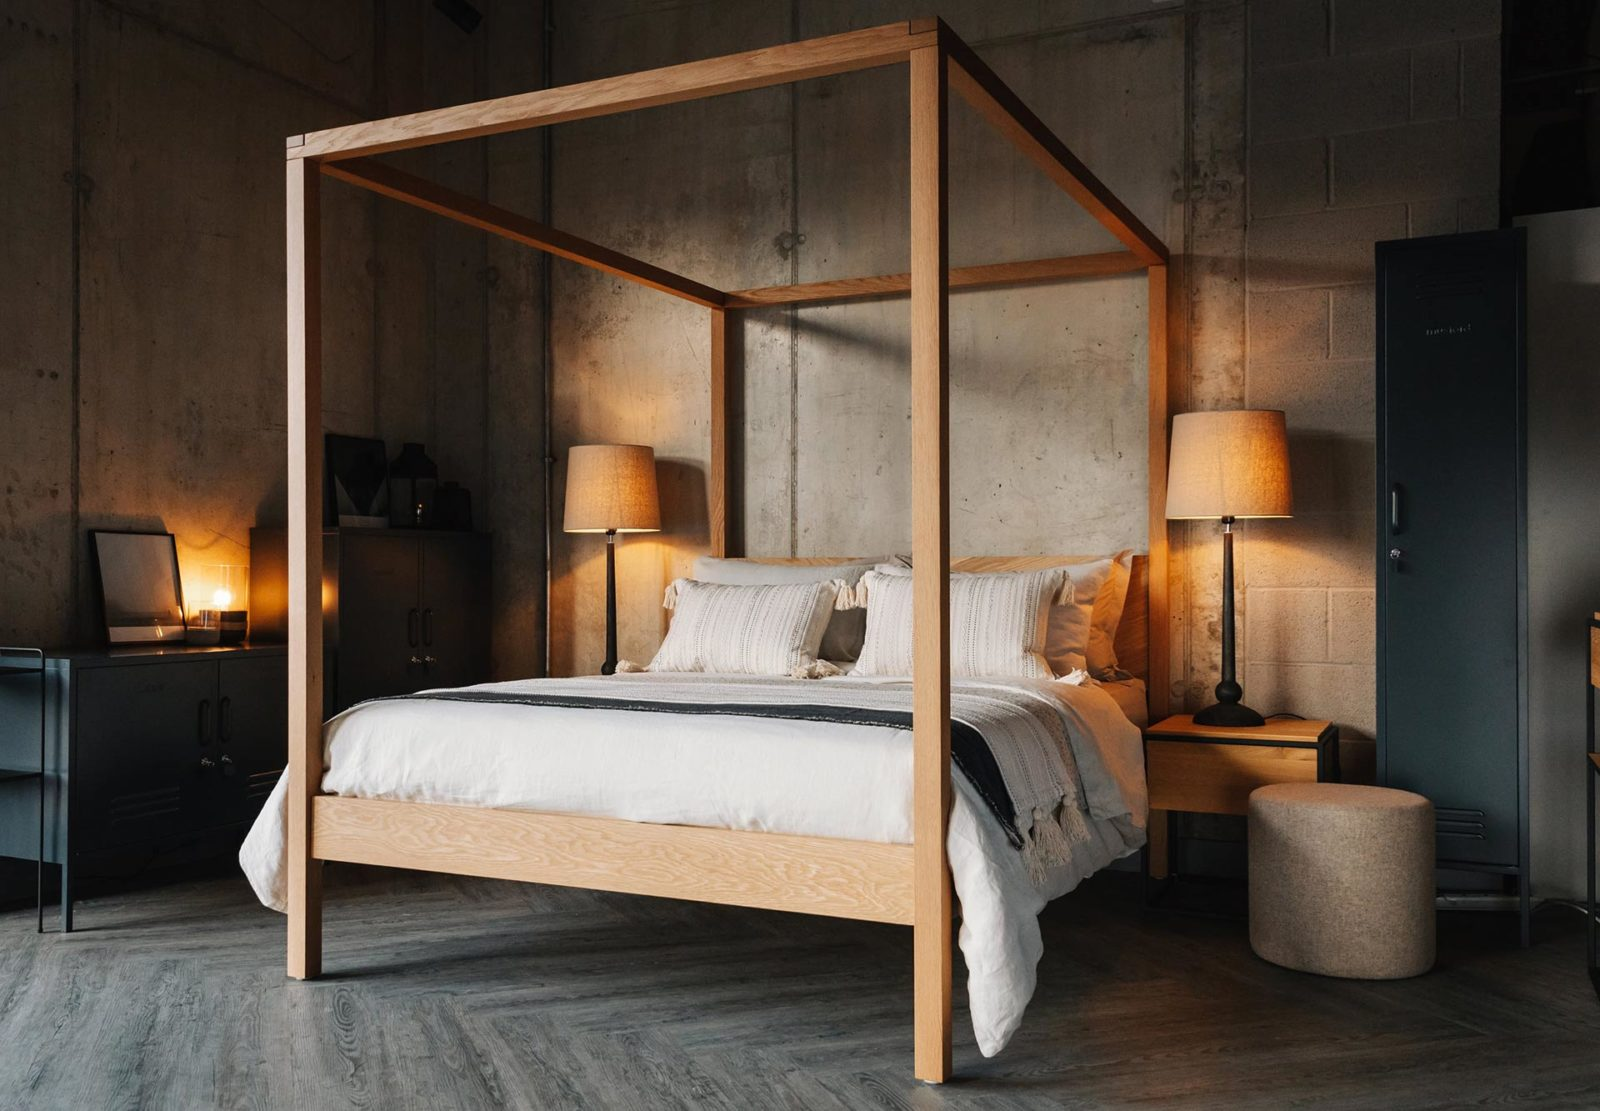 Hotel chic bedroom, striking solid oak Kelham 4 Poster bed with ivory bedding